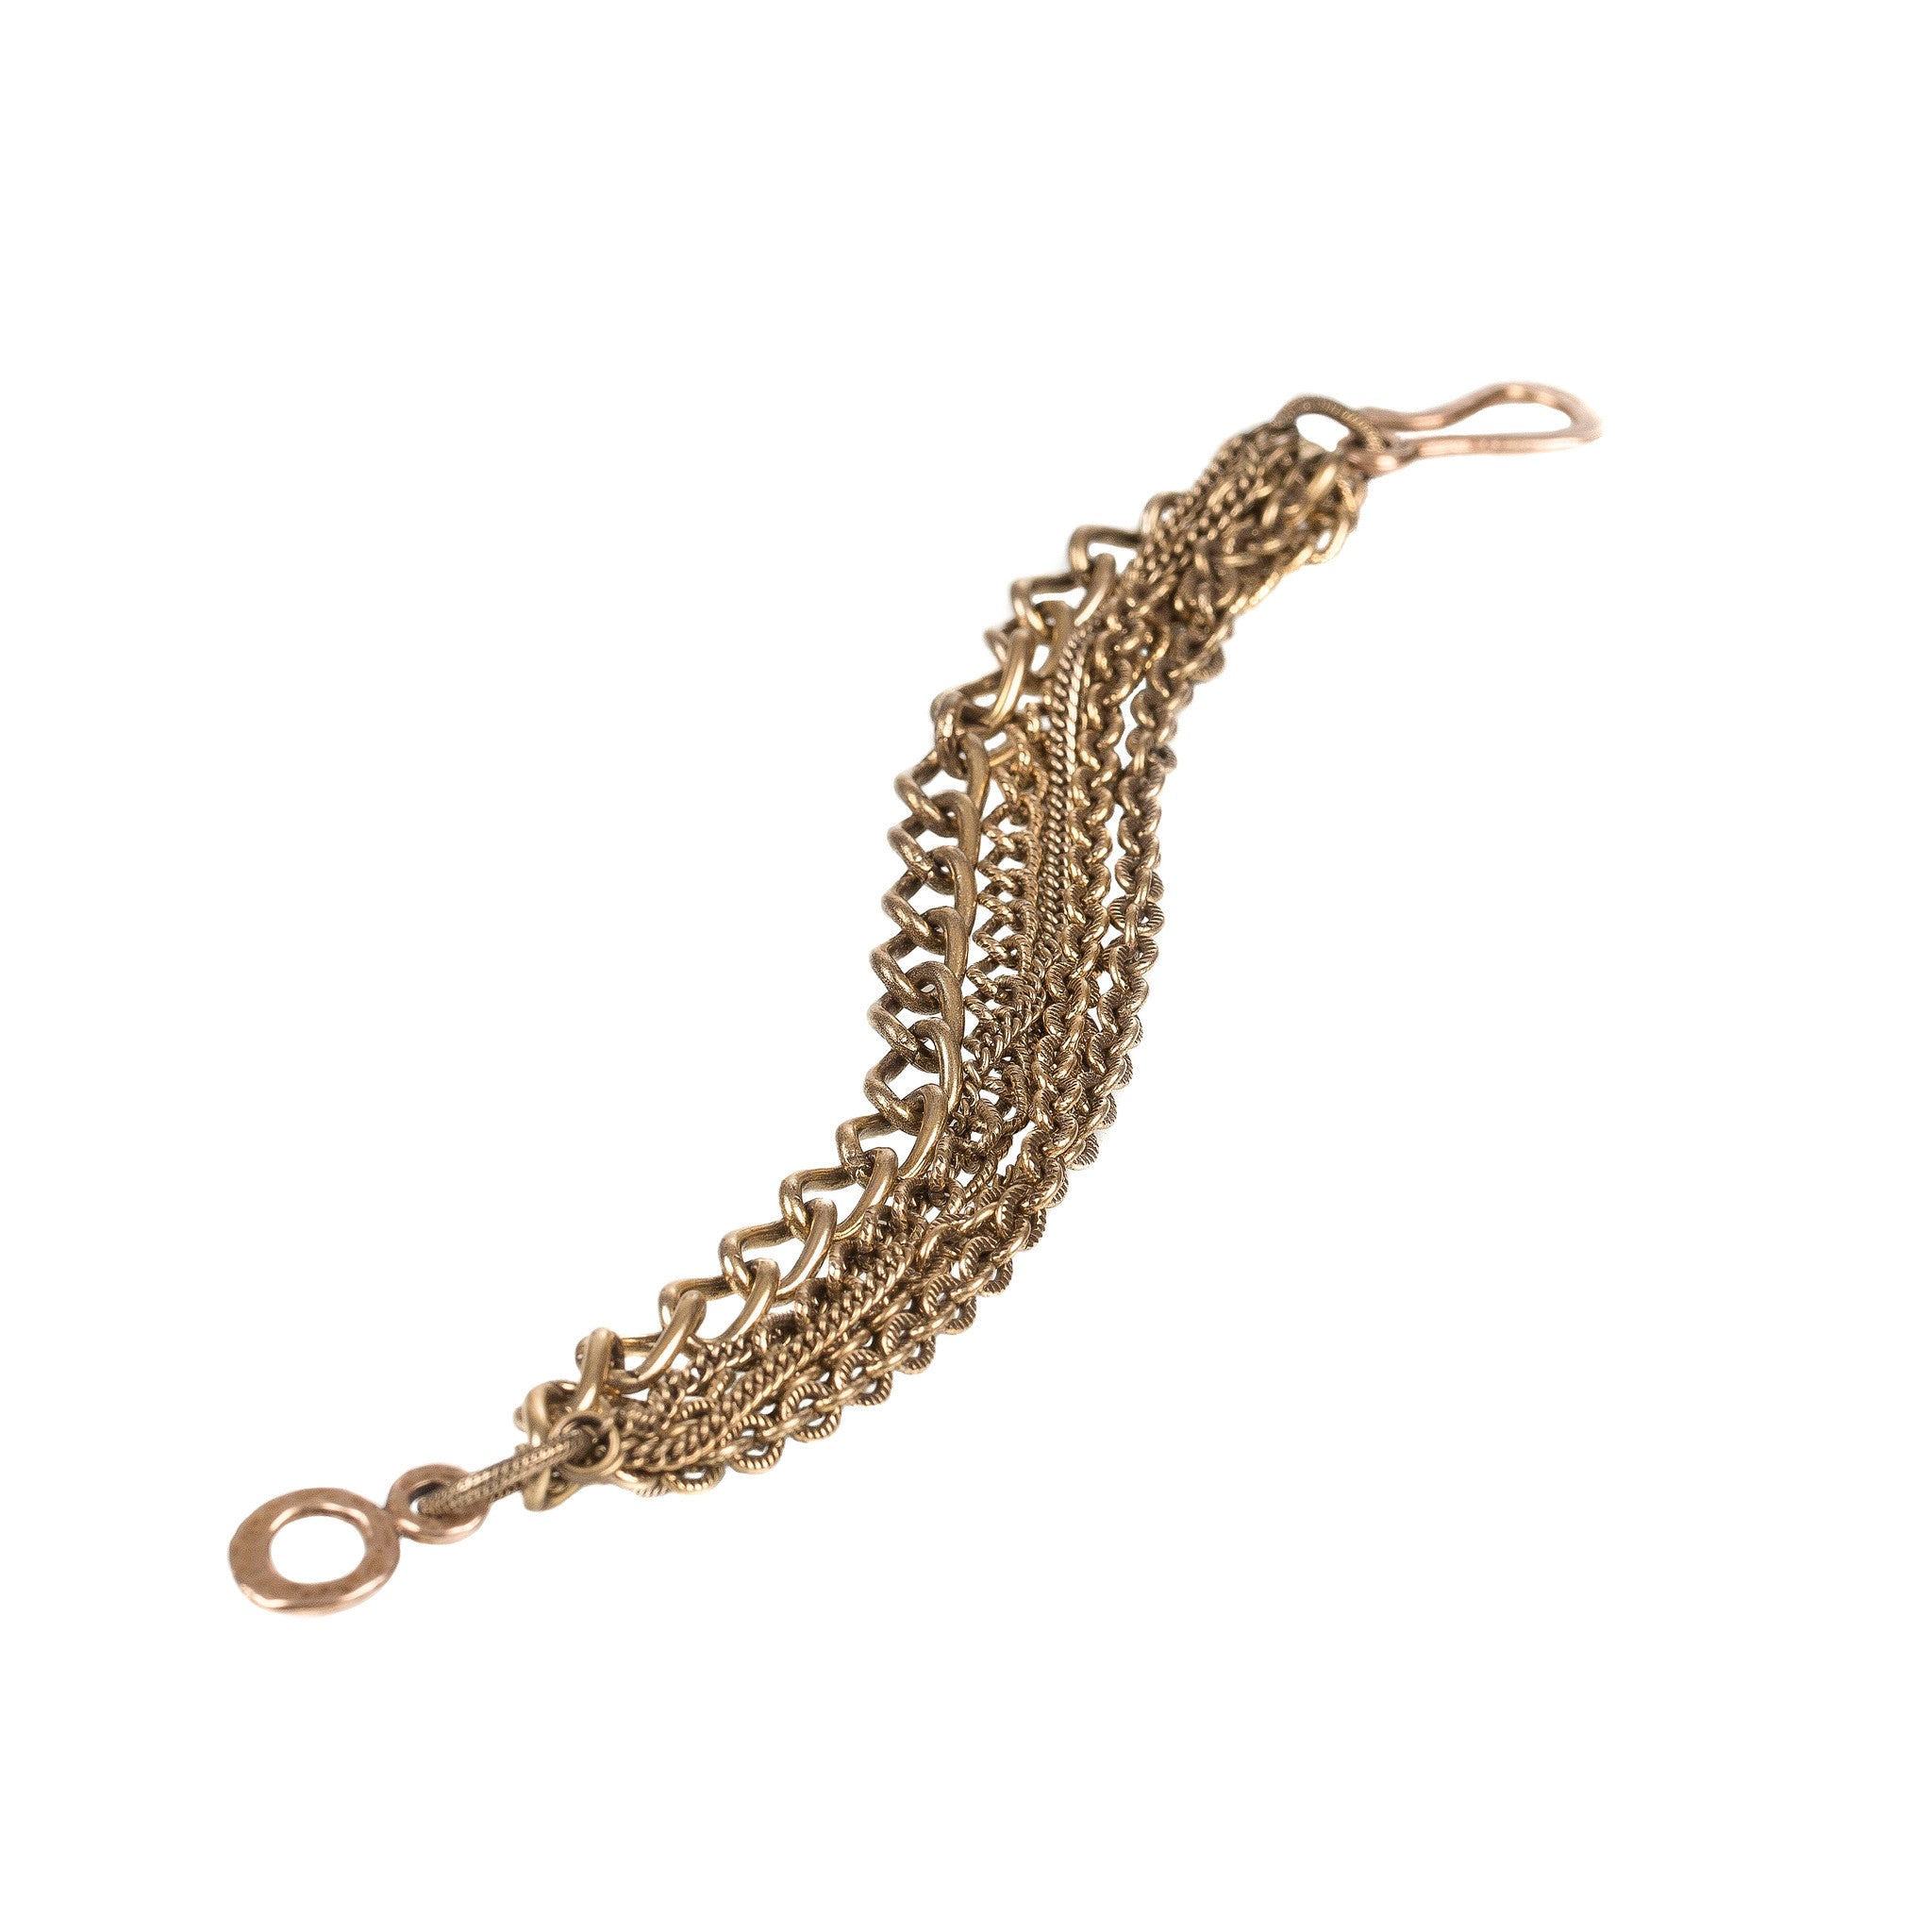 GOLD MULTI-CHAIN BRACELET